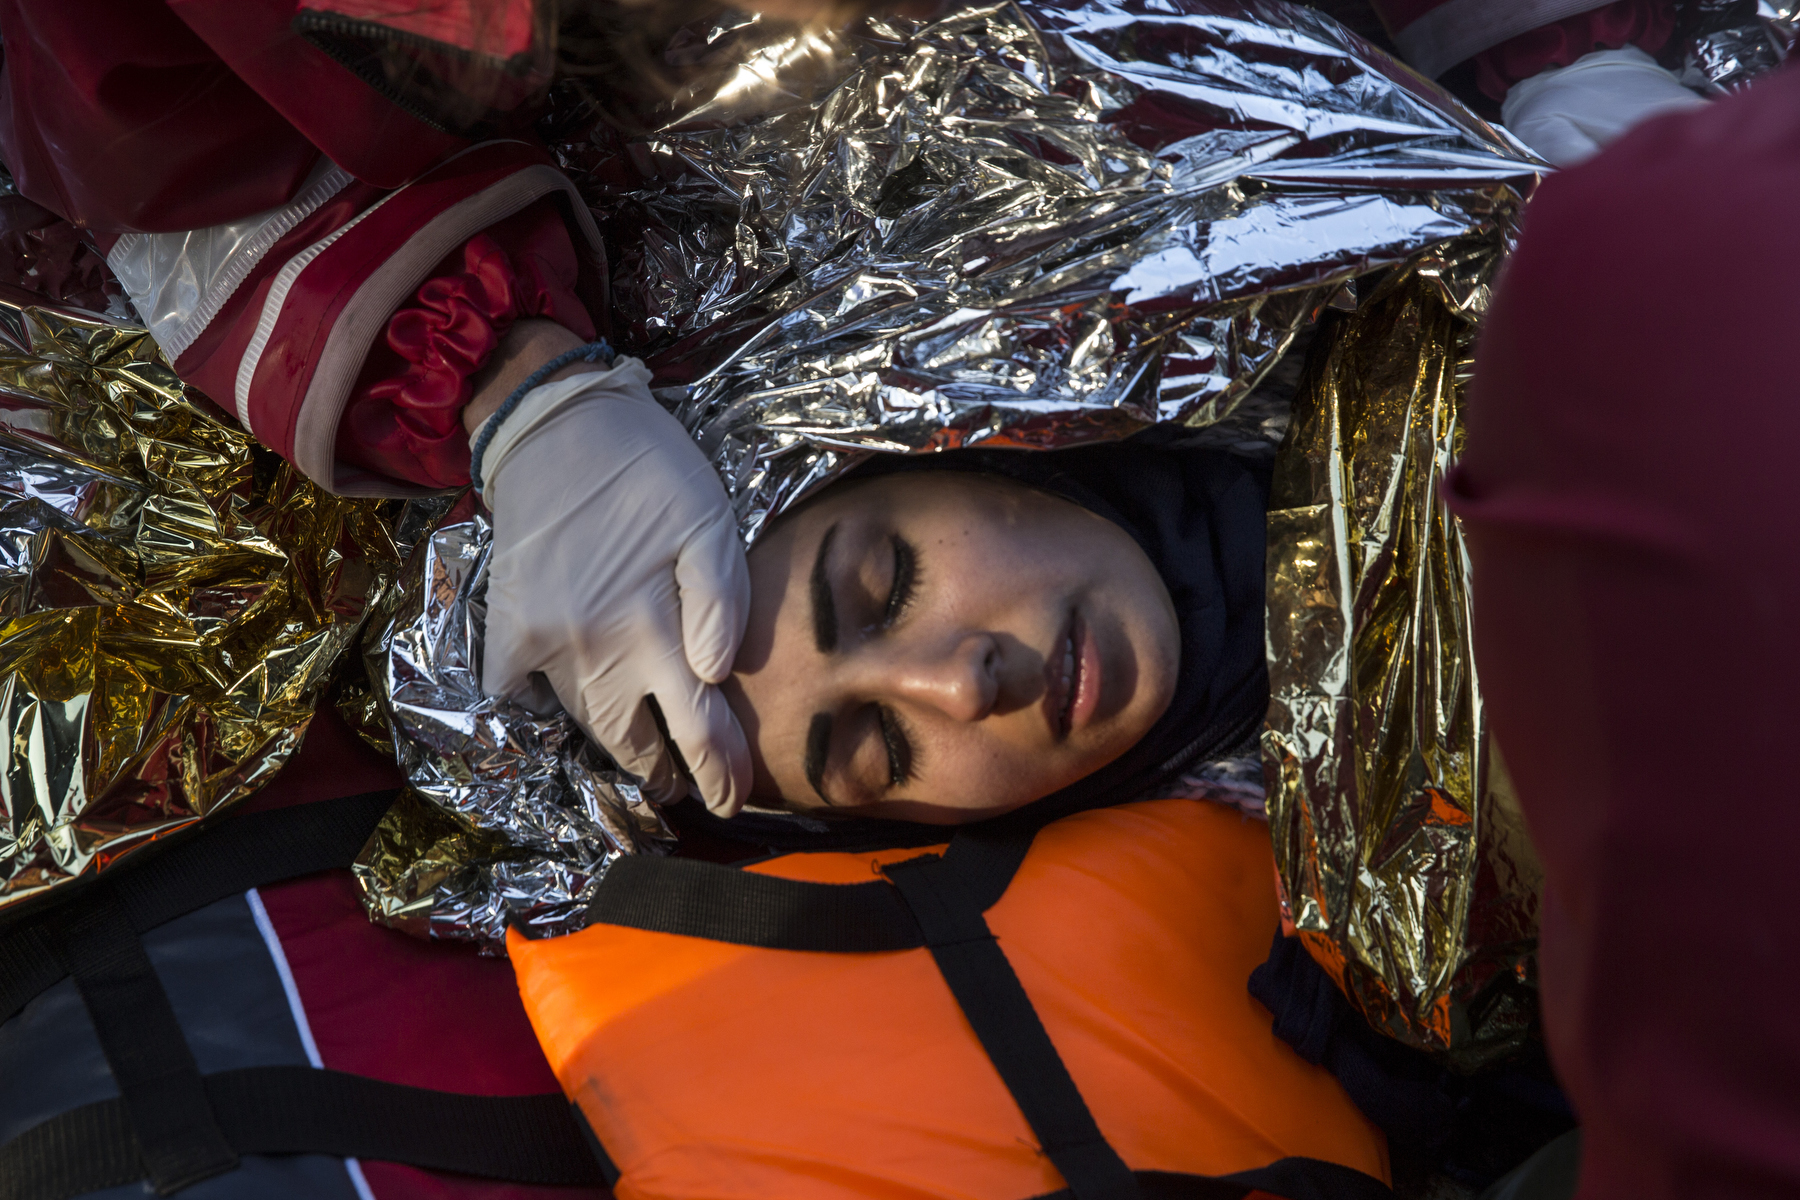 LESBOS, GREECE - OCTOBER 26: Volunteers with the Greek ( Hellenic) Red Cross tend to a Syrian woman  who was suffering from hypothermia after a boat that just landed. Colder weather and rough seas continue to cause deaths at sea as thousands travel in overcrowded small rafts. According to the IOM, an estimated 100,000 people landed in Greece, an average of almost 4,500 per day in late October and November. Nearly all of those entering Greece on a boat from Turkey are from the war zones of Syria, Iraq and Afghanistan. (Photo by Paula Bronstein)